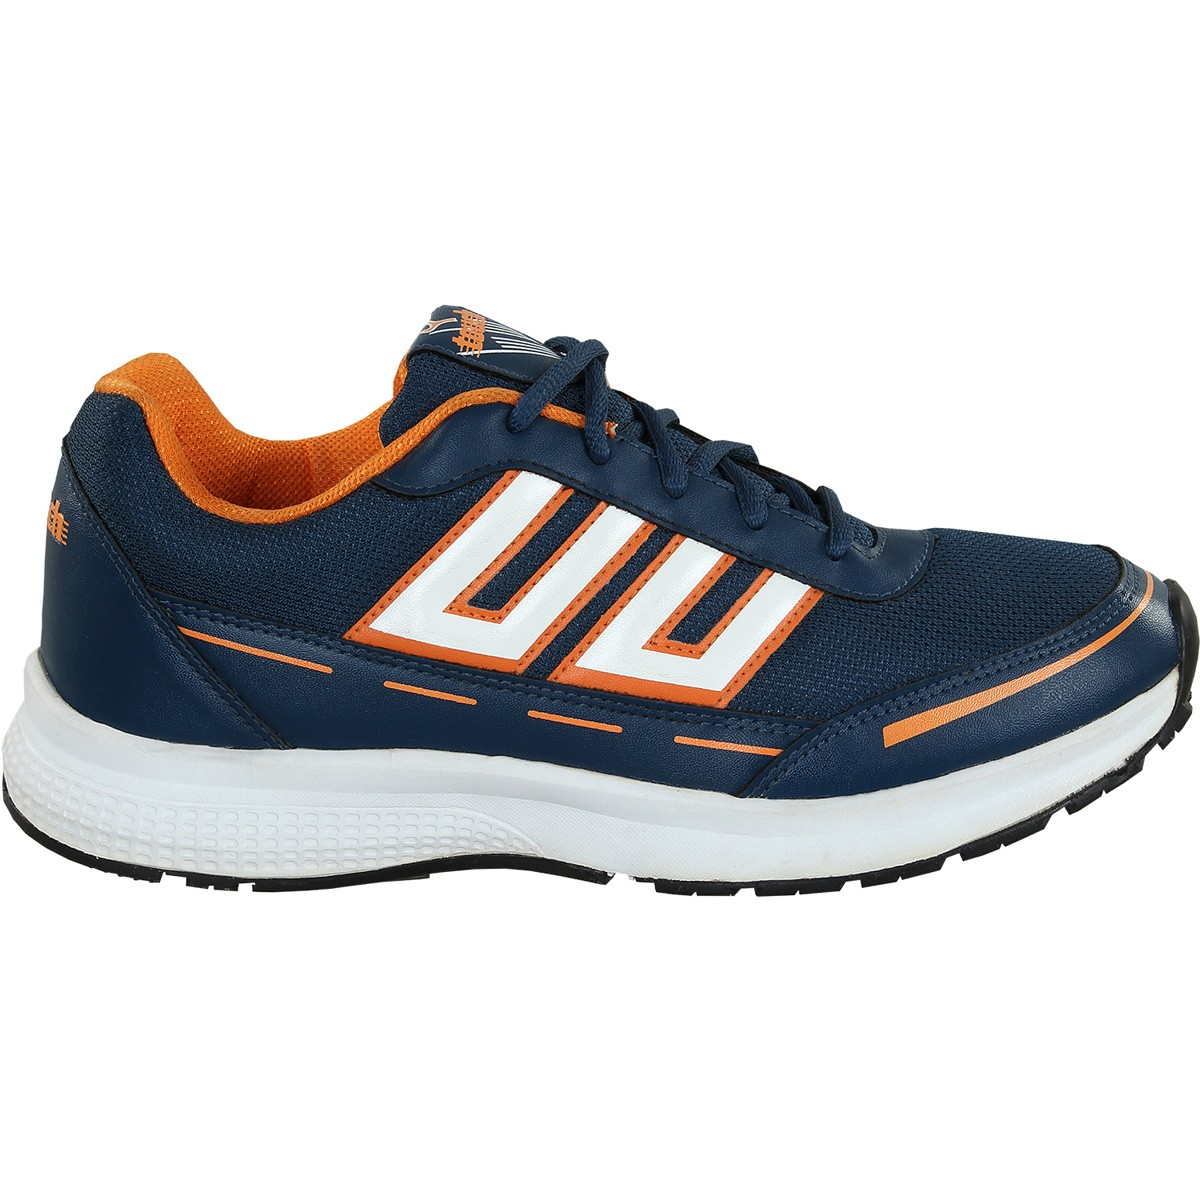 Touch-687-Navy/Orange